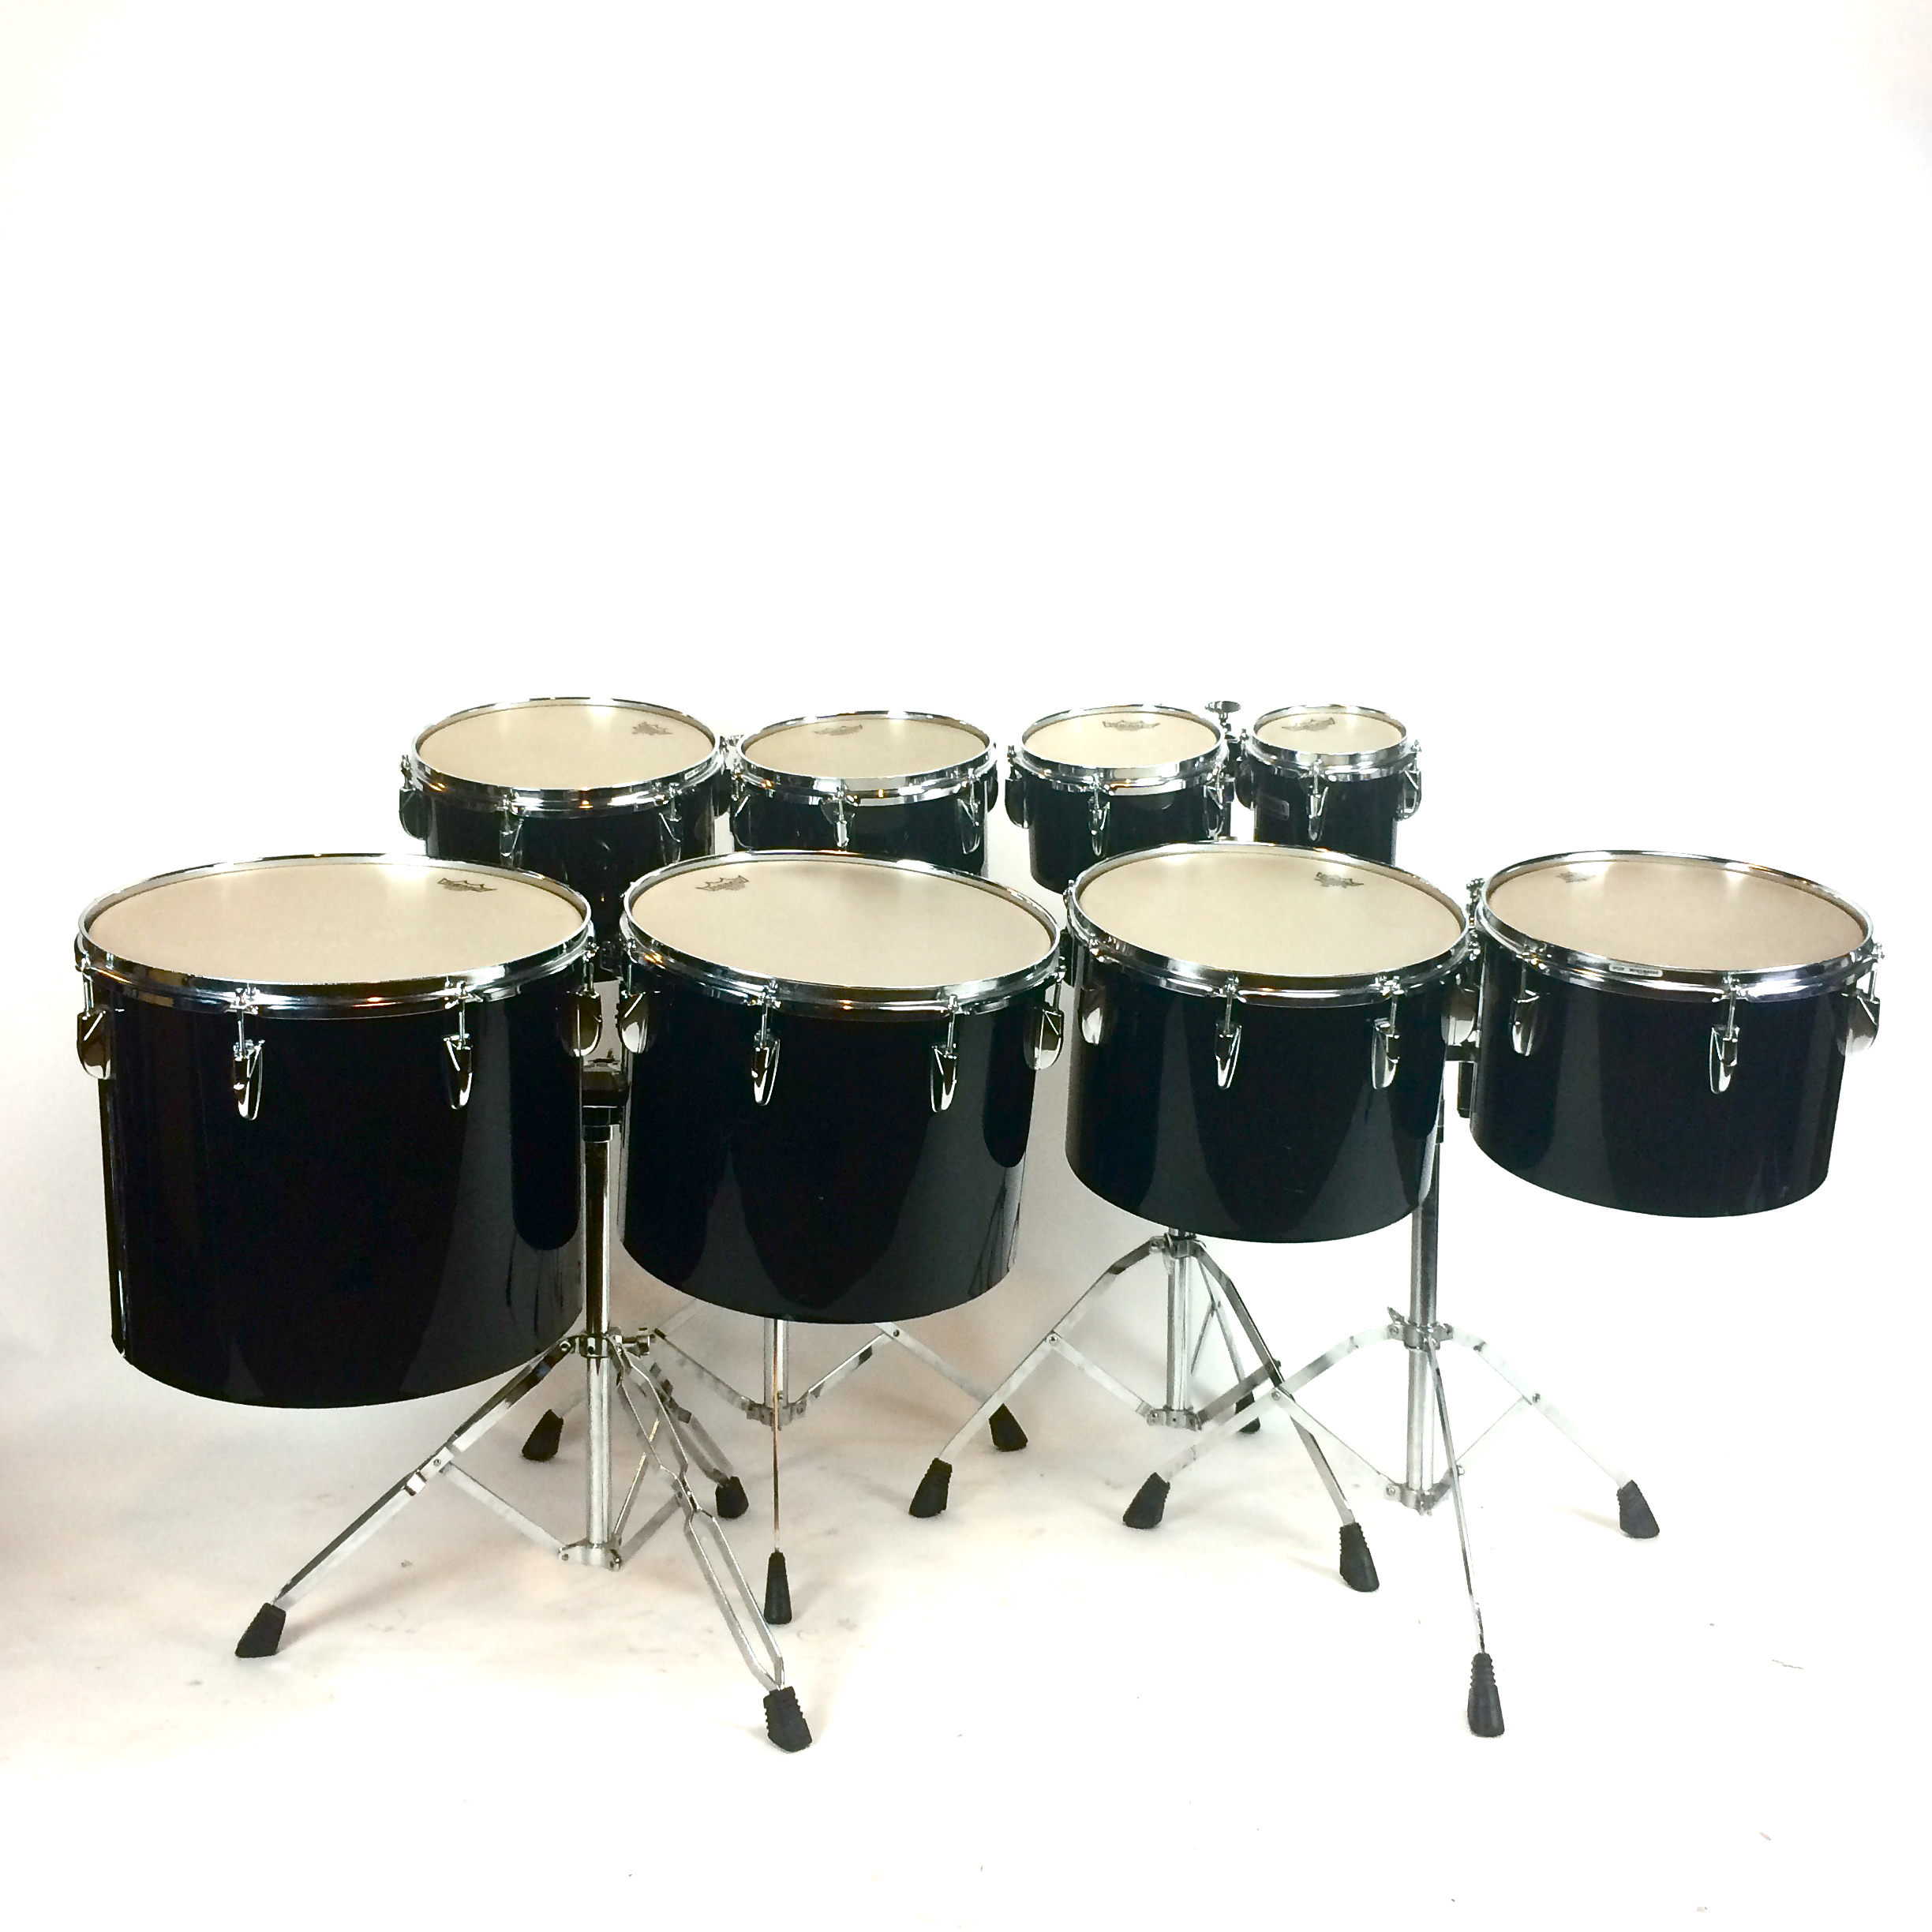 Yamaha Concert Toms (sizes 6in to 16in) Image